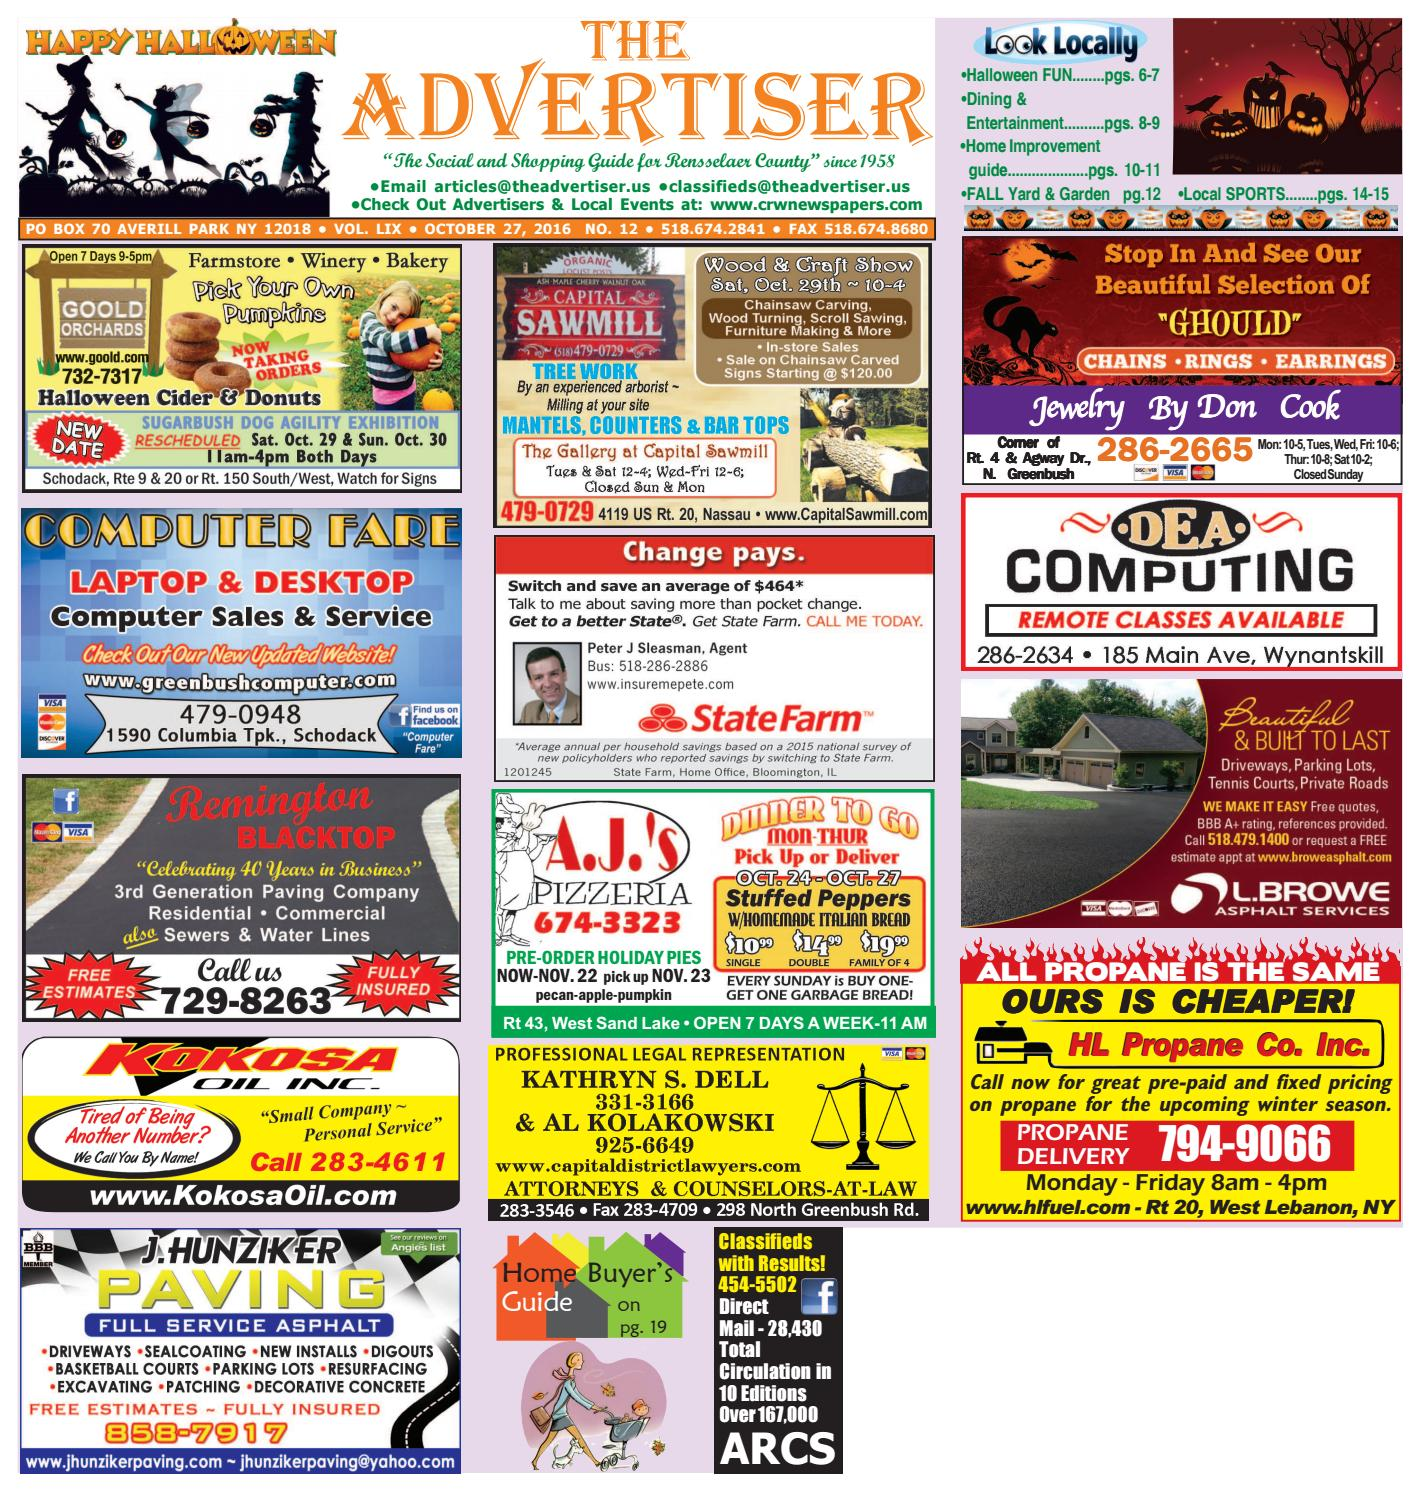 6348c72f343 Advertiser South 102716 by Capital Region Weekly Newspapers - issuu